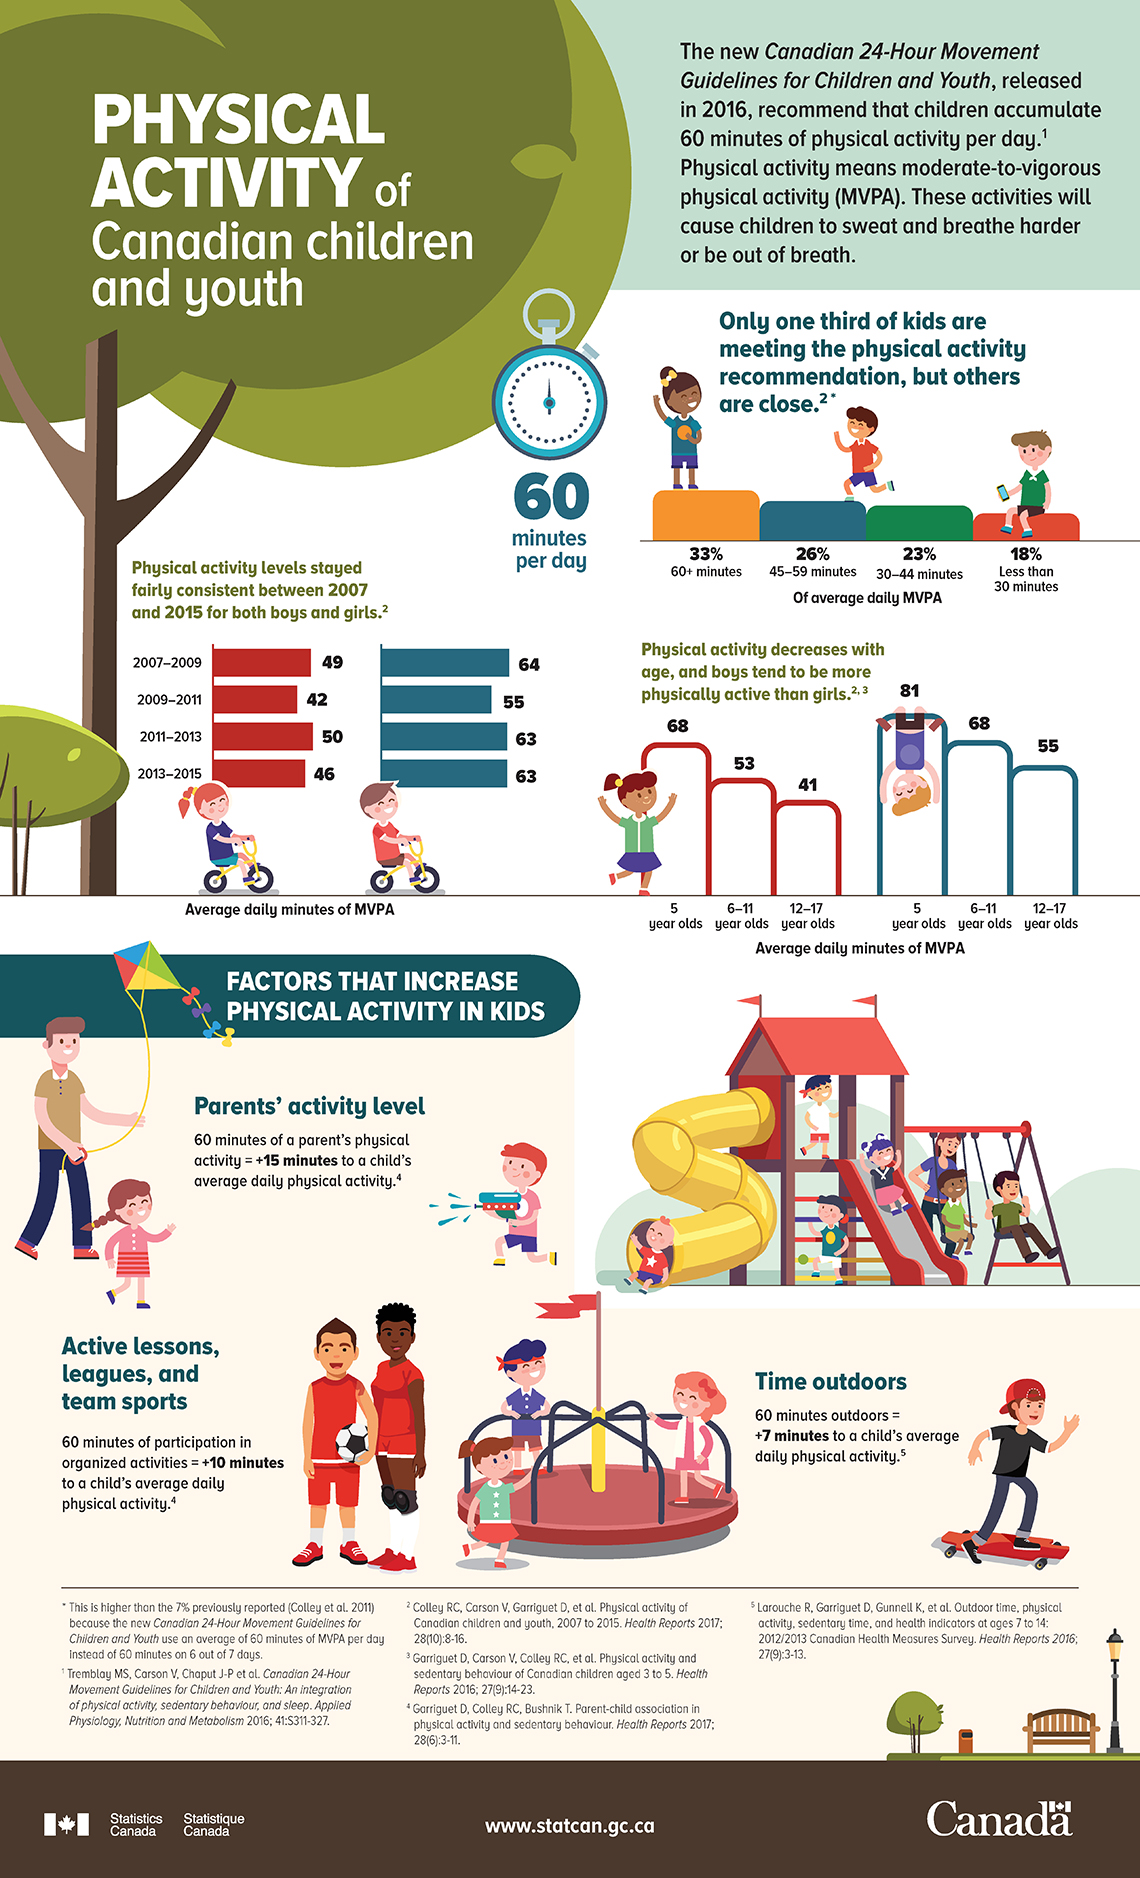 Canadian guidelines for physical activity